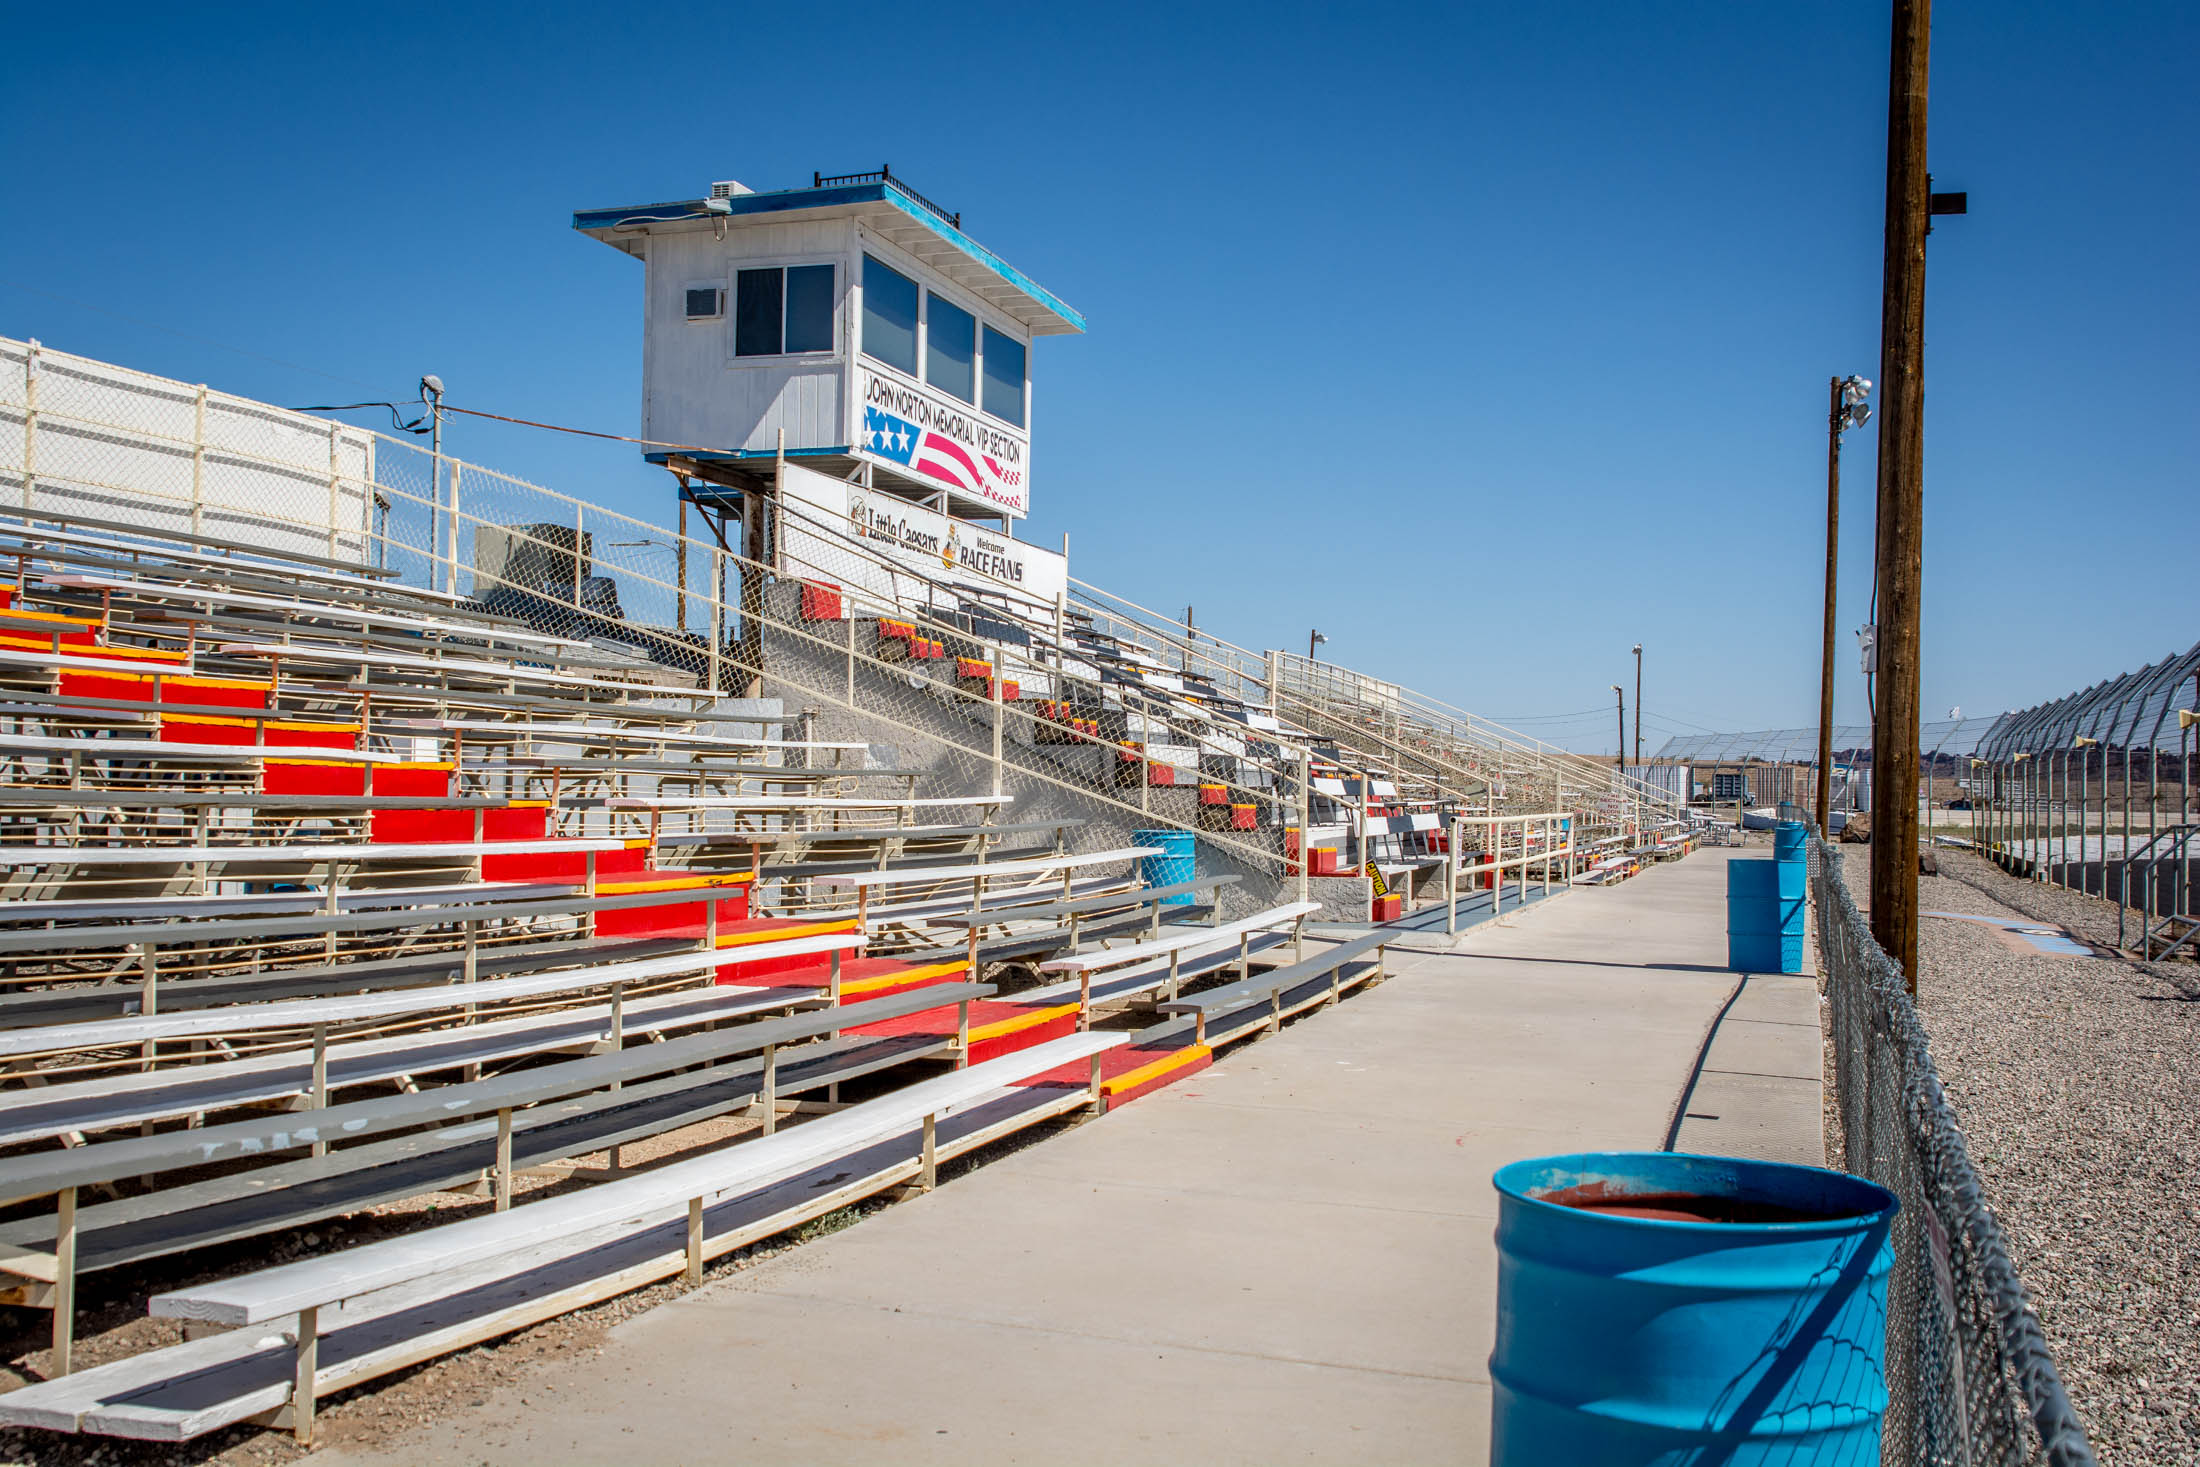 We have a maximum capacity of 2,500+. Our stands provide the best view of the racing and of our gorgeous mountains and lake.